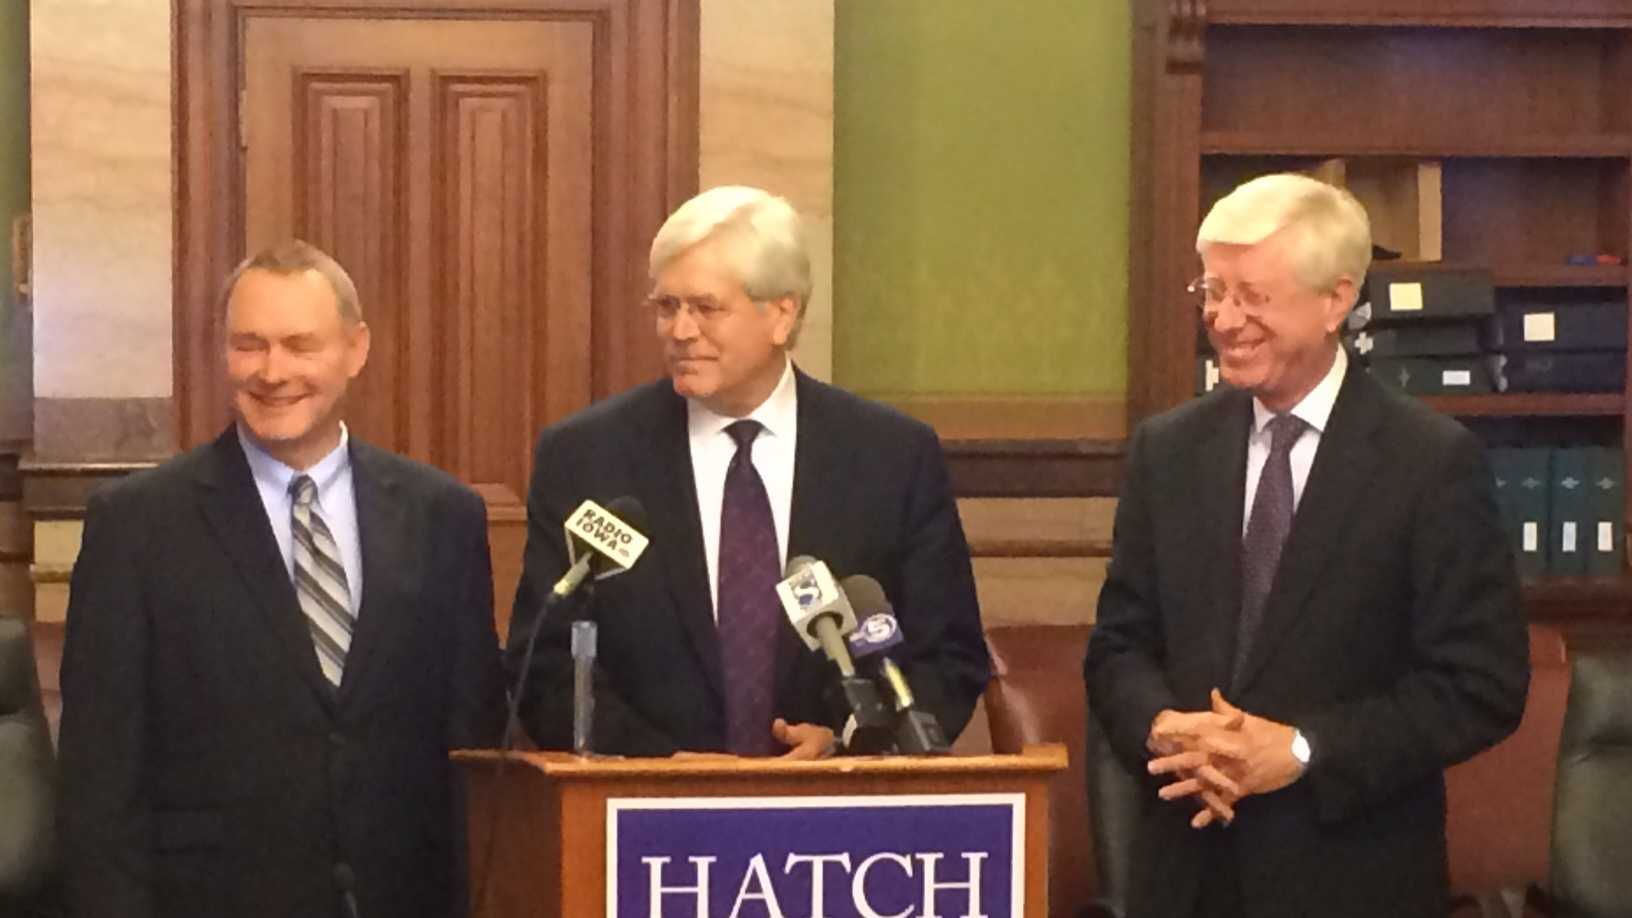 hatch news conference